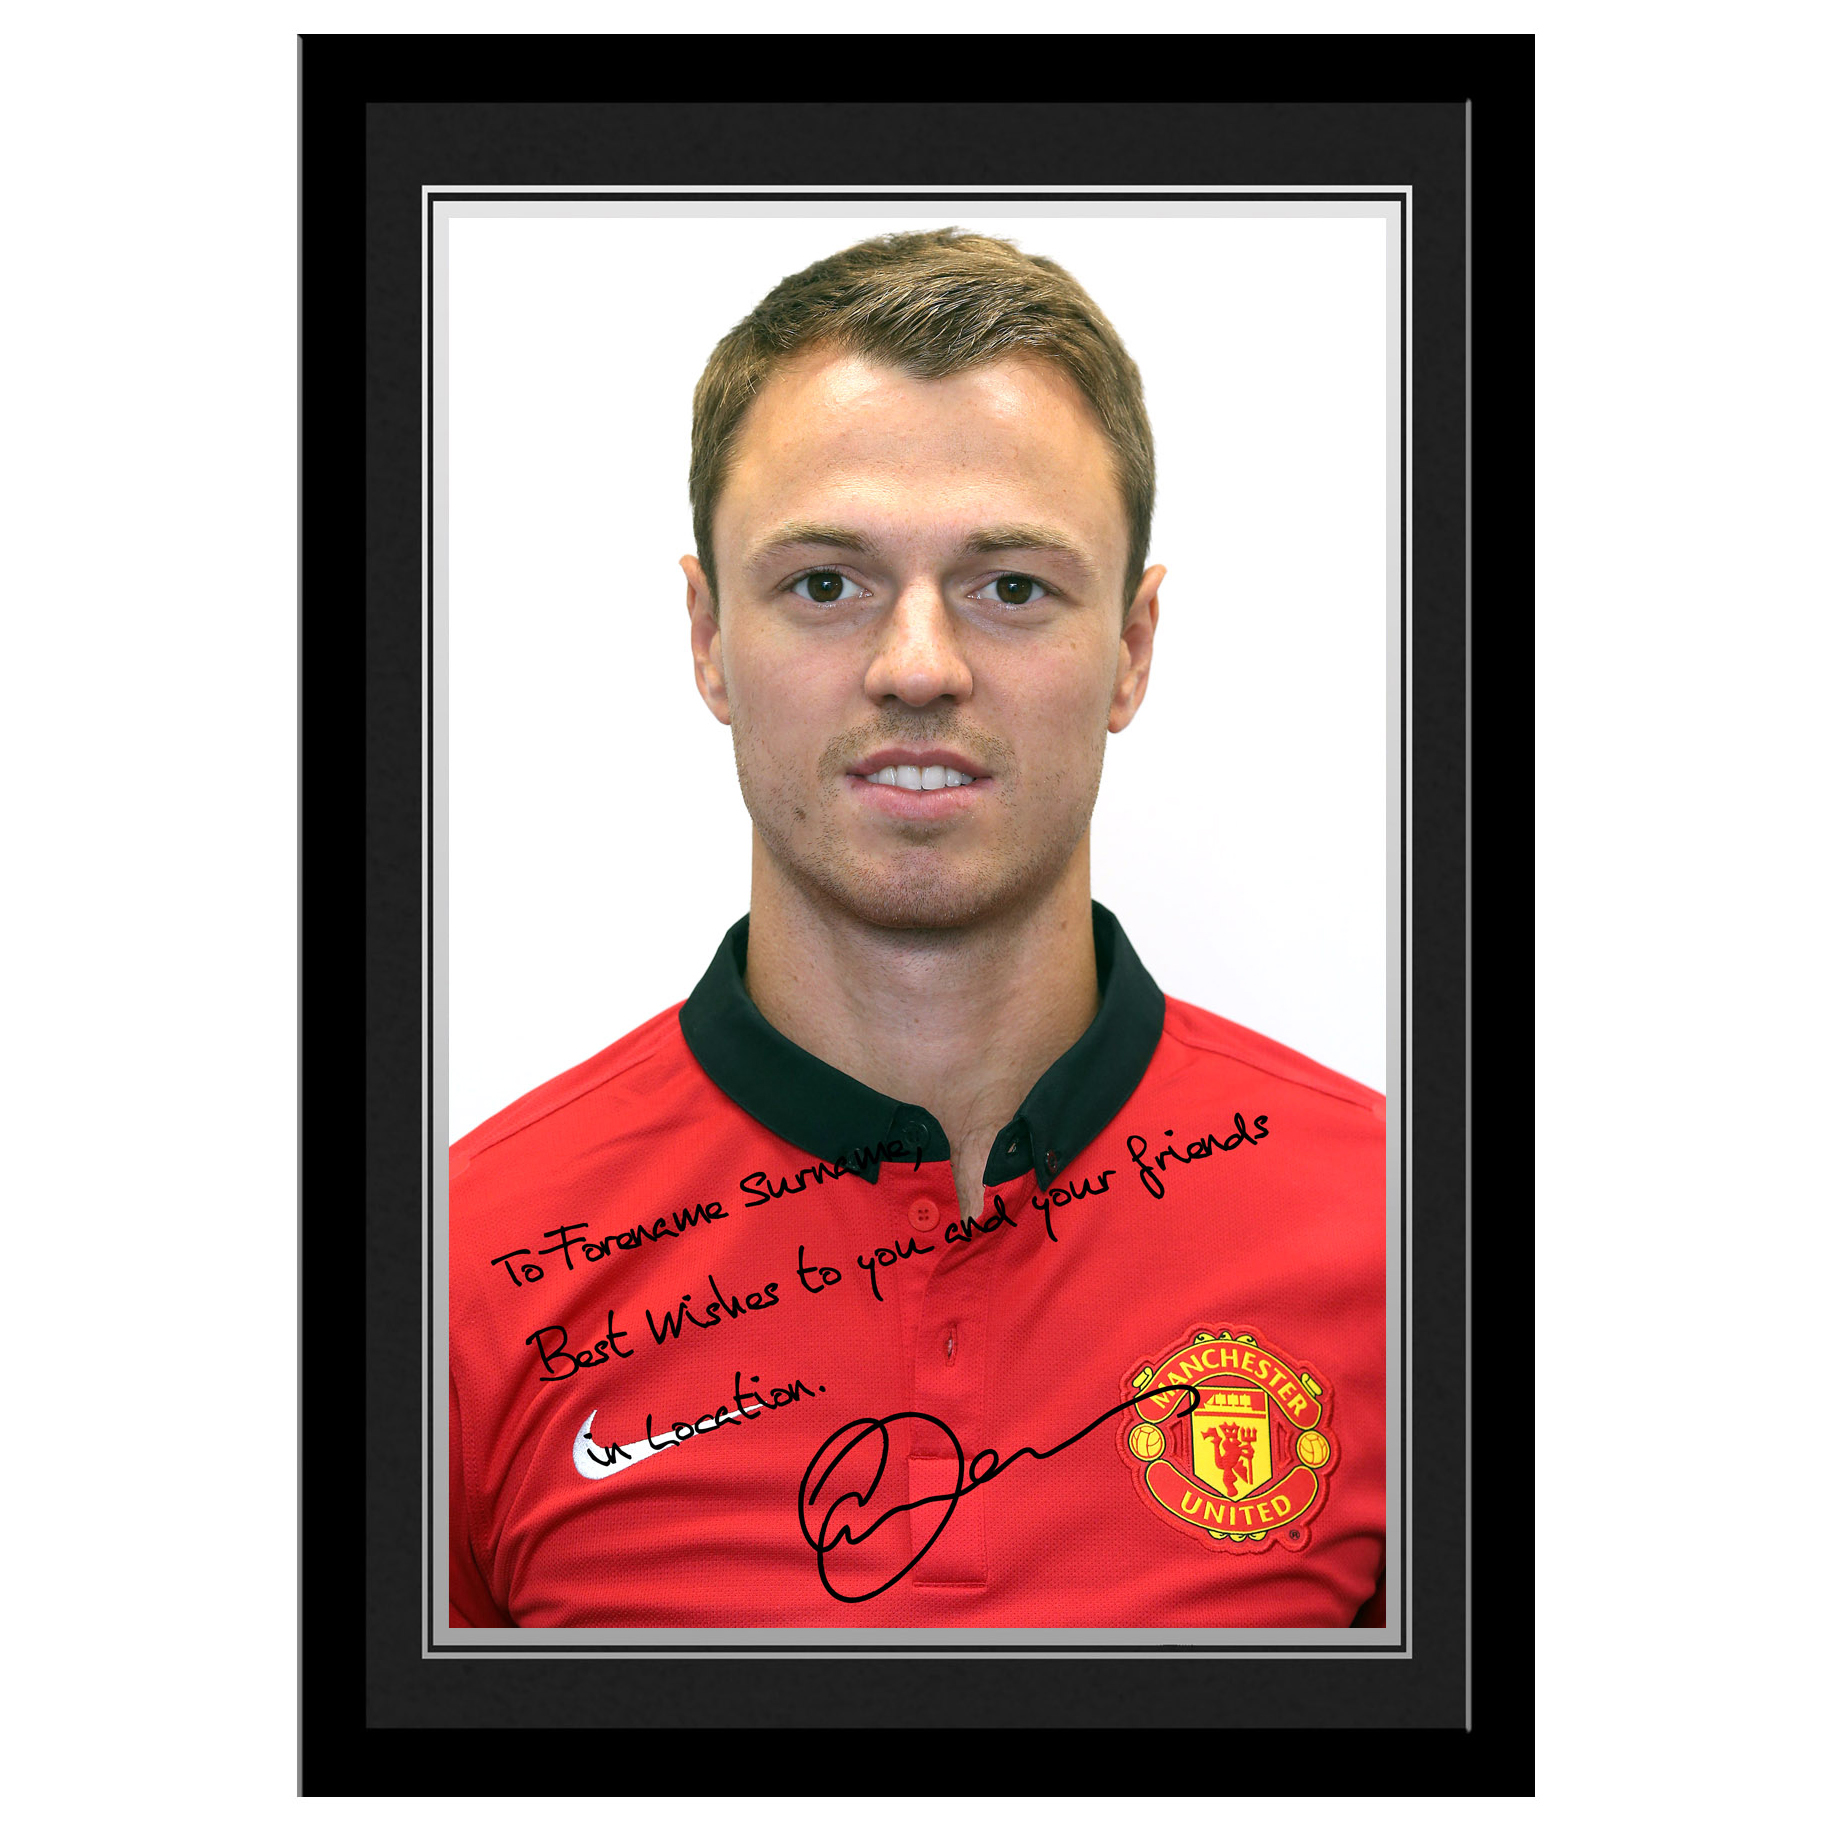 Manchester United Personalised Signature Photo Framed - Evans